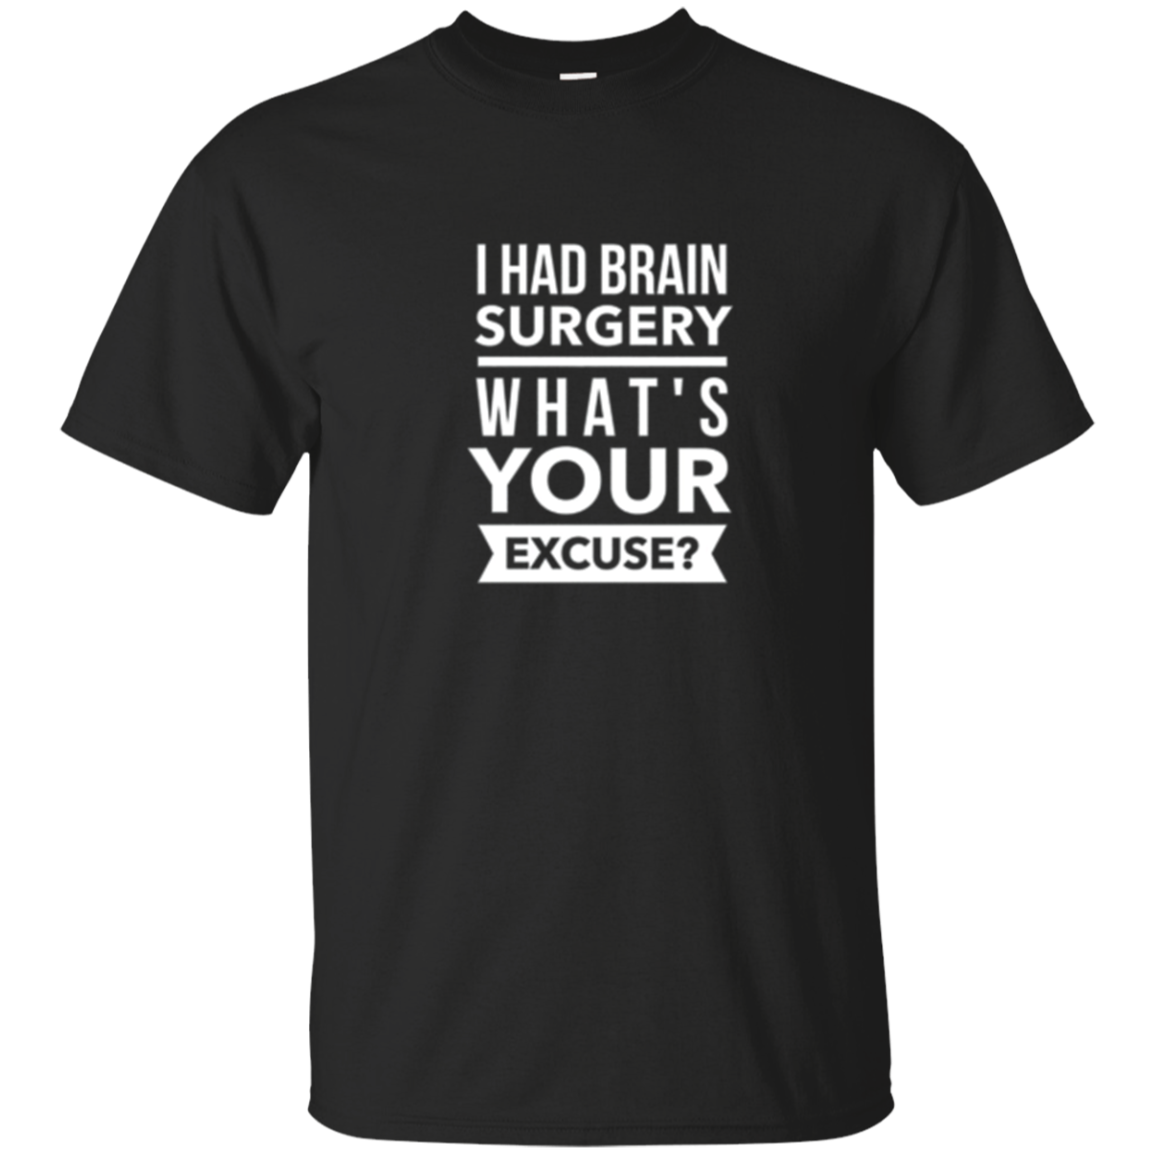 I had brain surgery what's your excuse survivor gift t-shirt